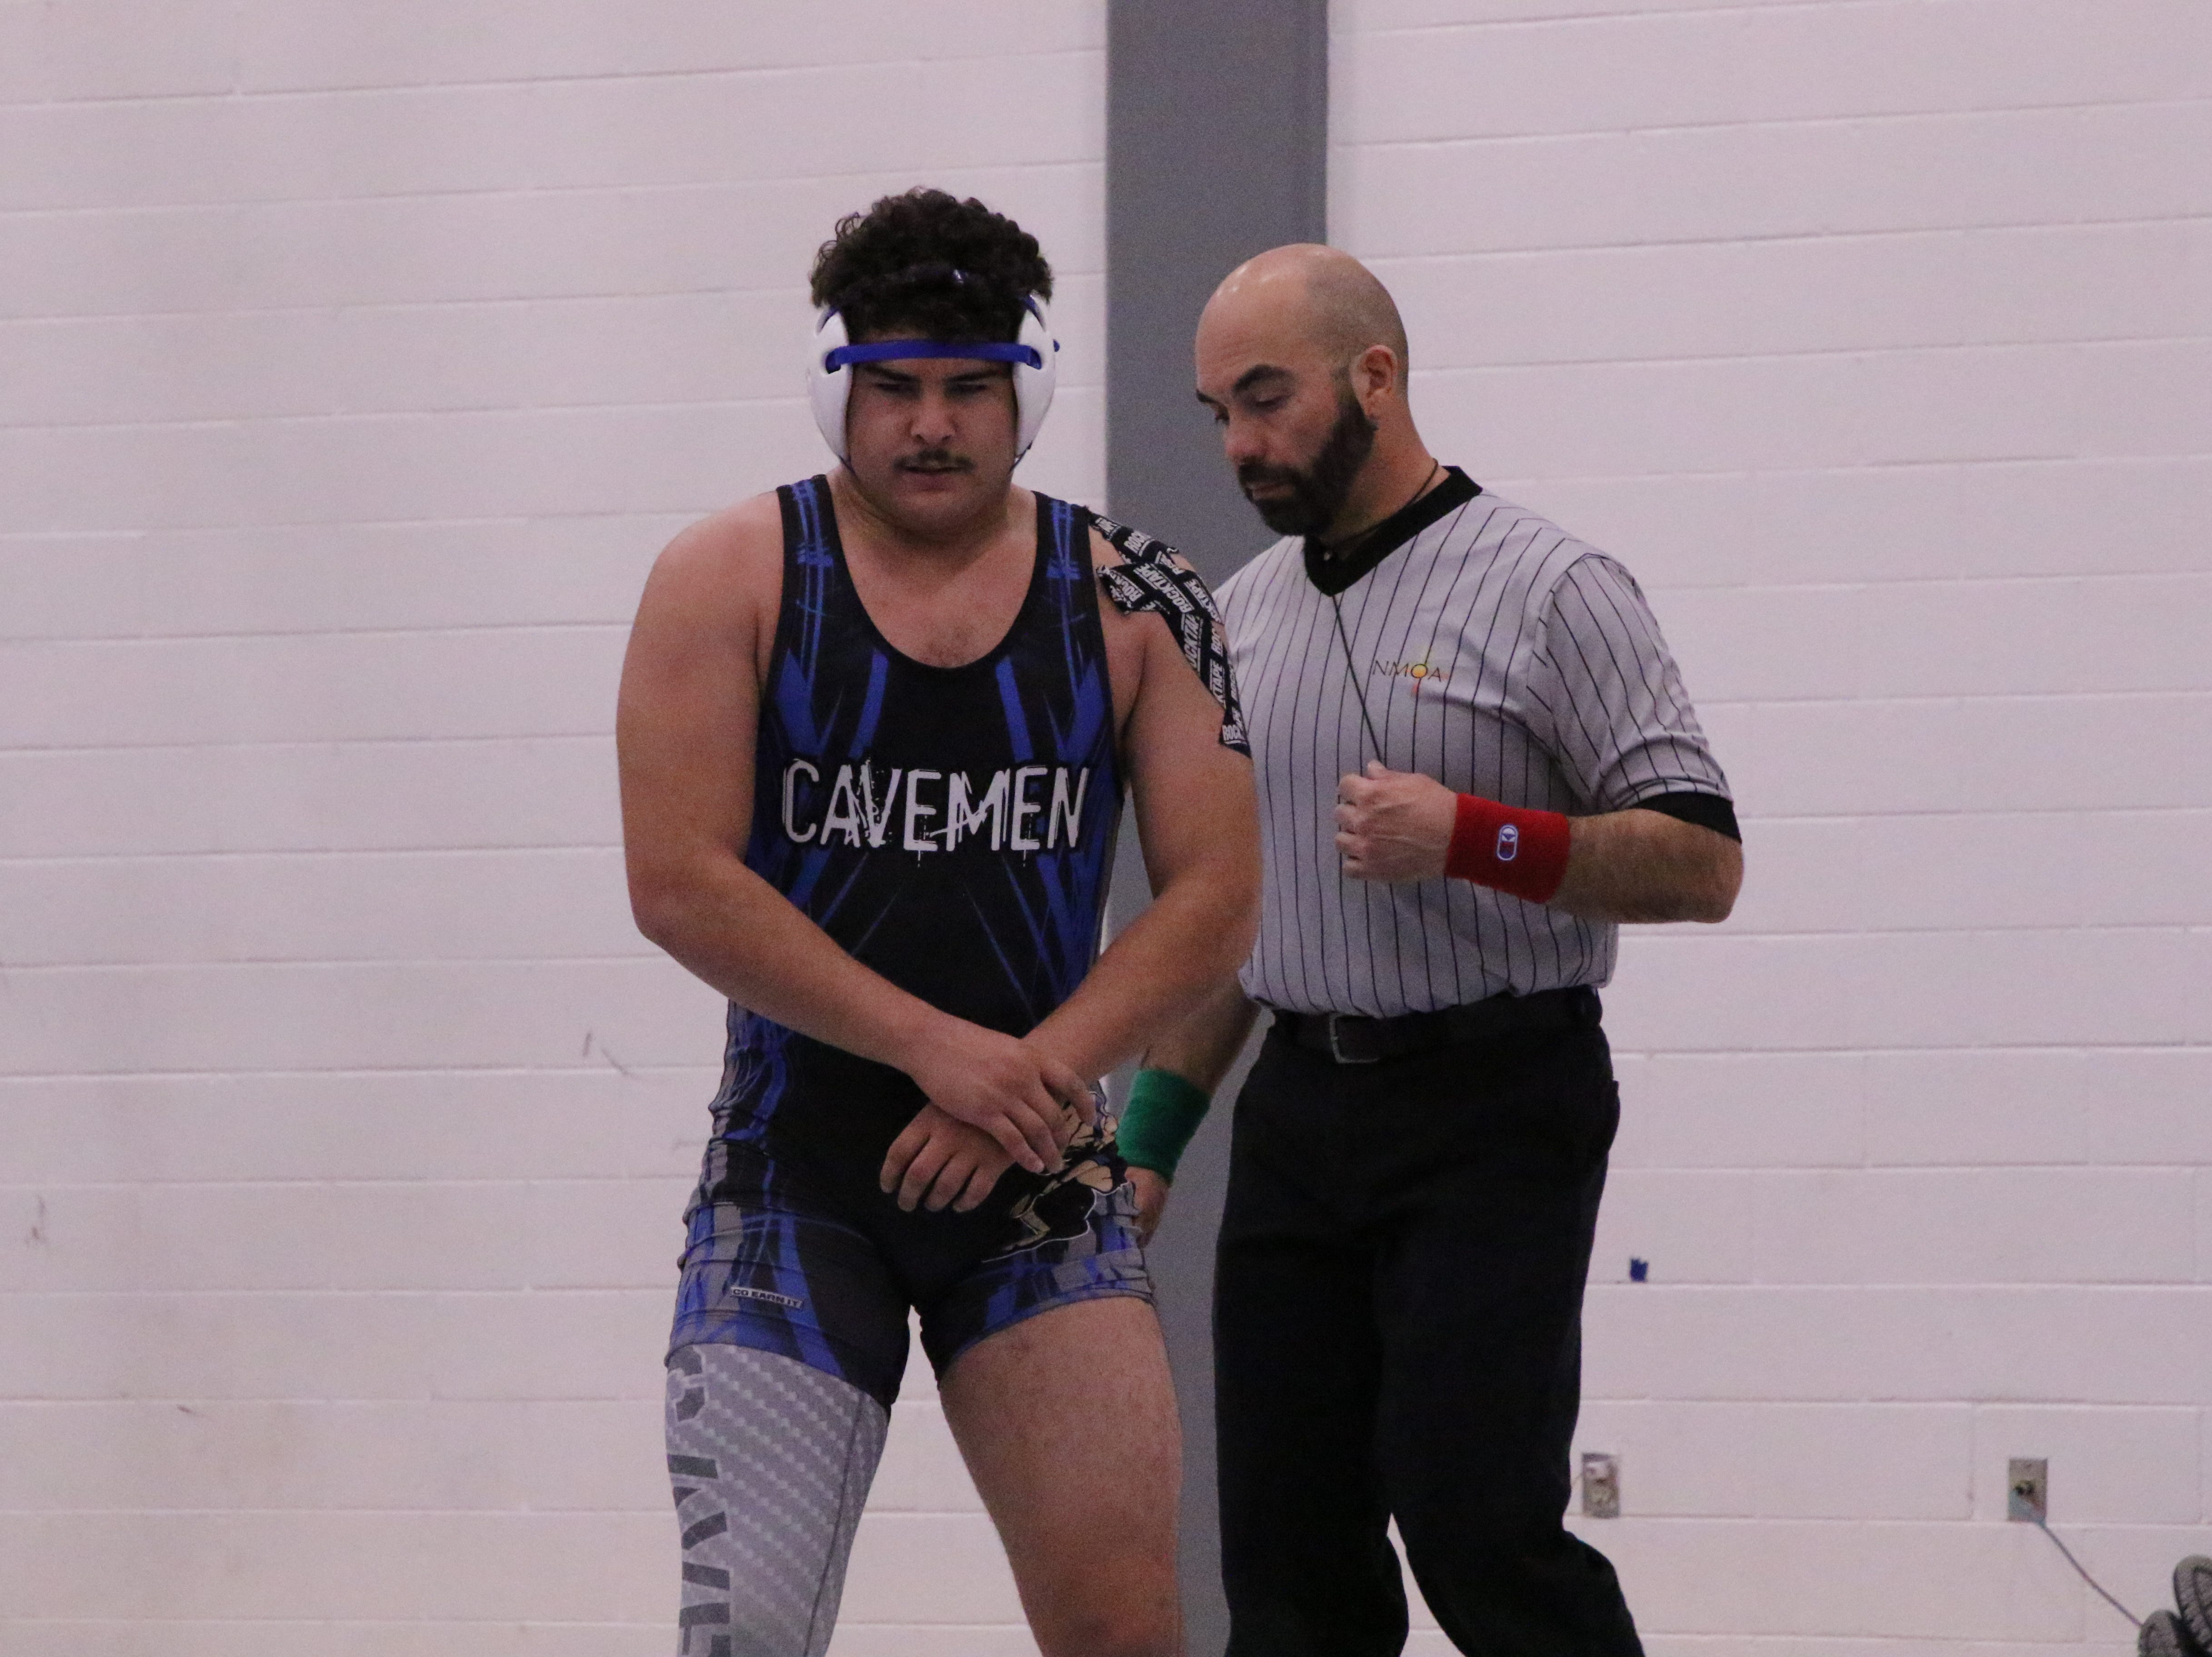 Baca mentally prepares himself to return to the mat after injuring his left shoulder.